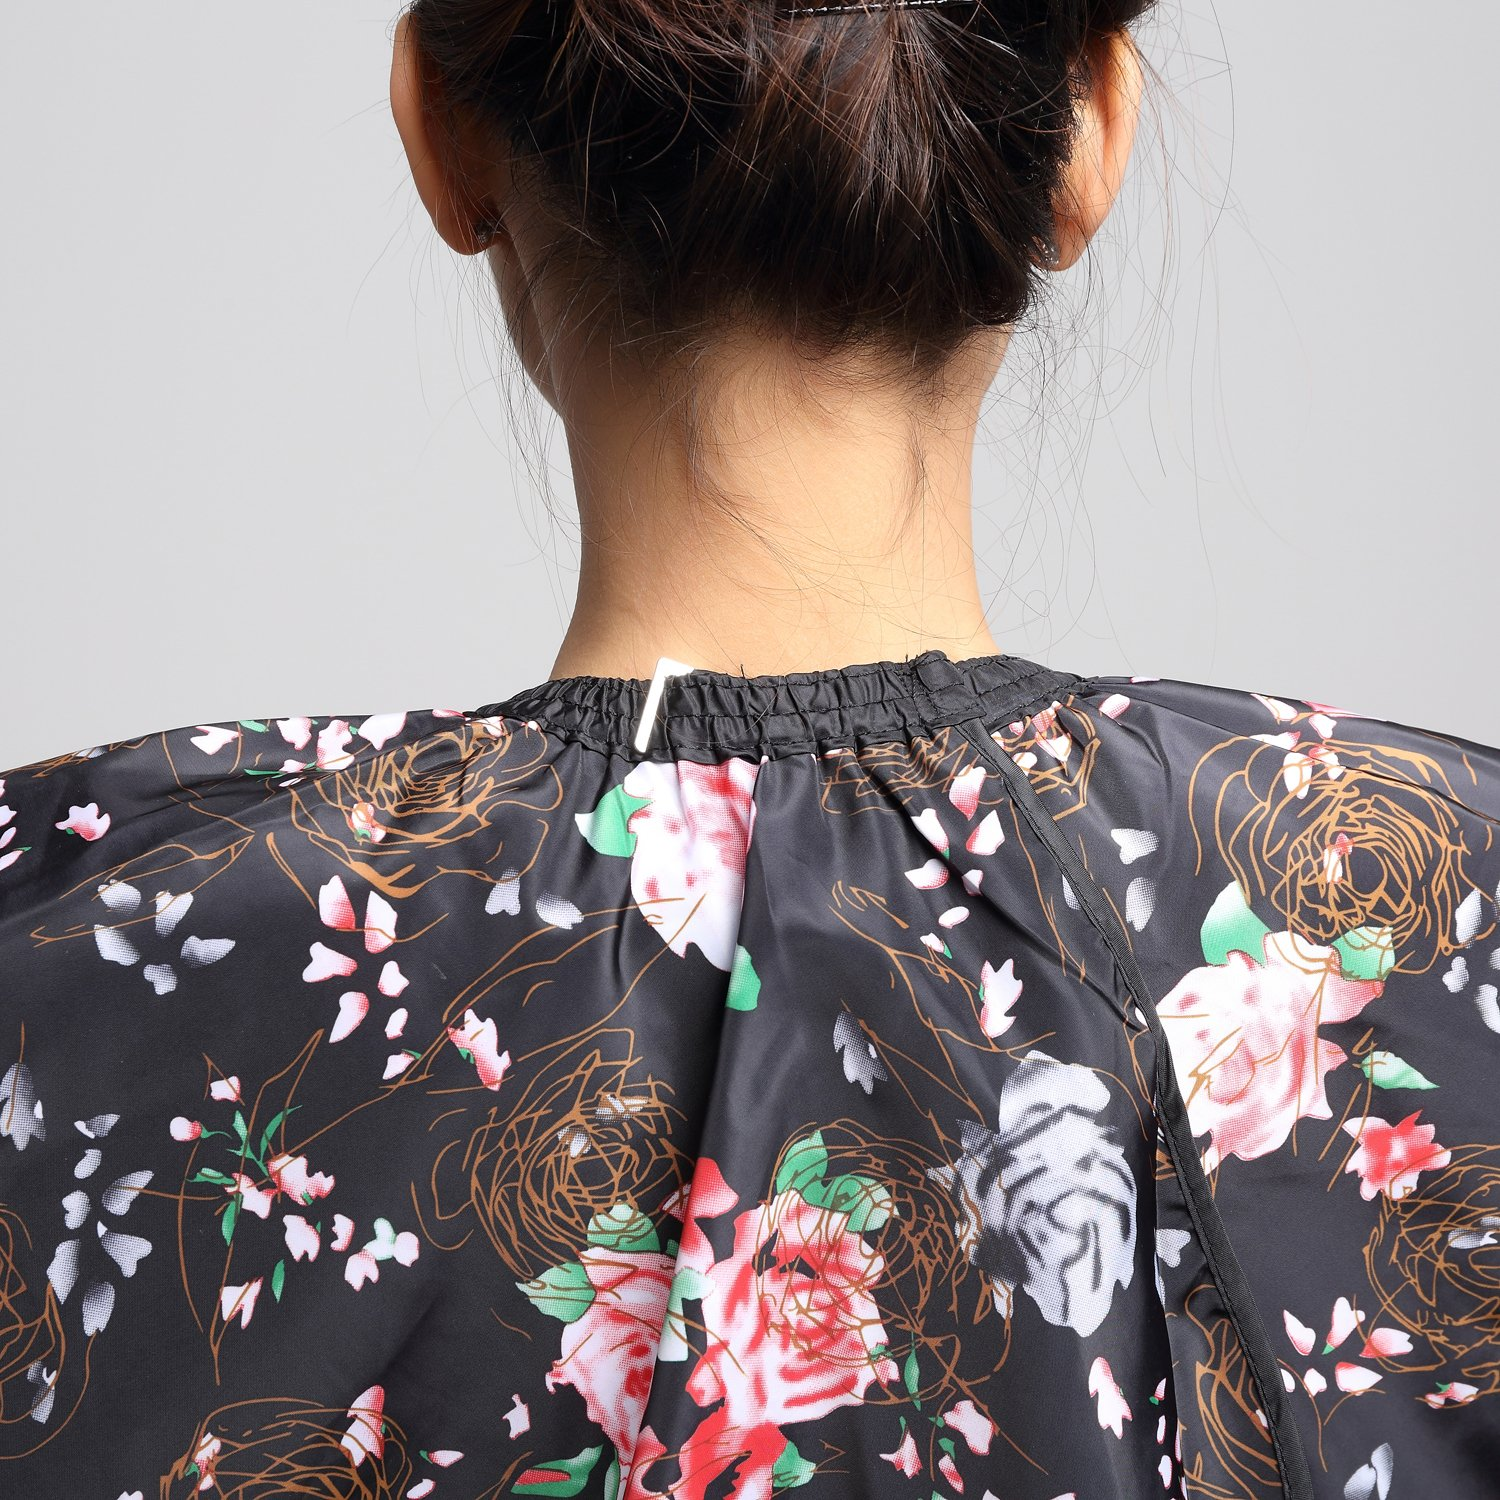 Salon Professional Hair Styling Cape,Colorfulife Hair Cutting Rose Flower Bronzing Waterproof Hairdresser Wai Cloth Barber Gown Hairdressing Wrap,55''x63'' K064 (Rose) by Colorfulife (Image #8)